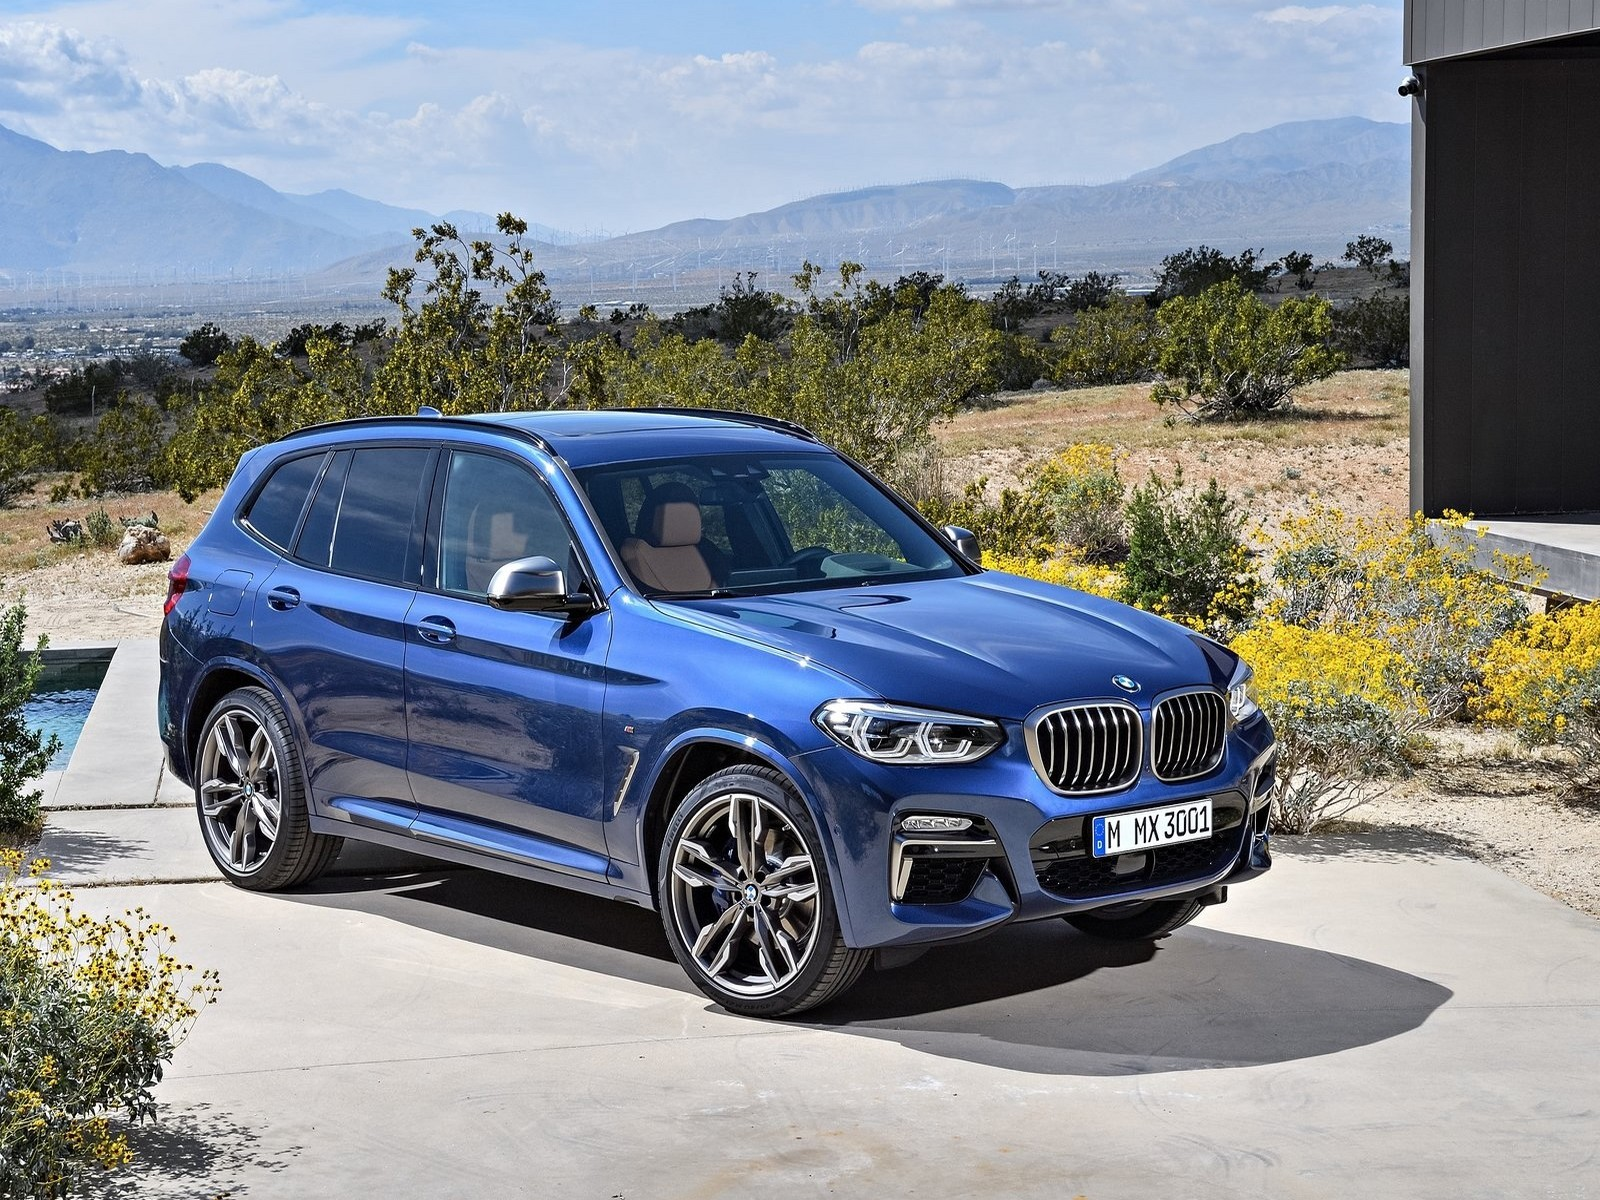 le nouveau bmw x3 et x3 m40i 2018 les premi re photos du bmw x3. Black Bedroom Furniture Sets. Home Design Ideas